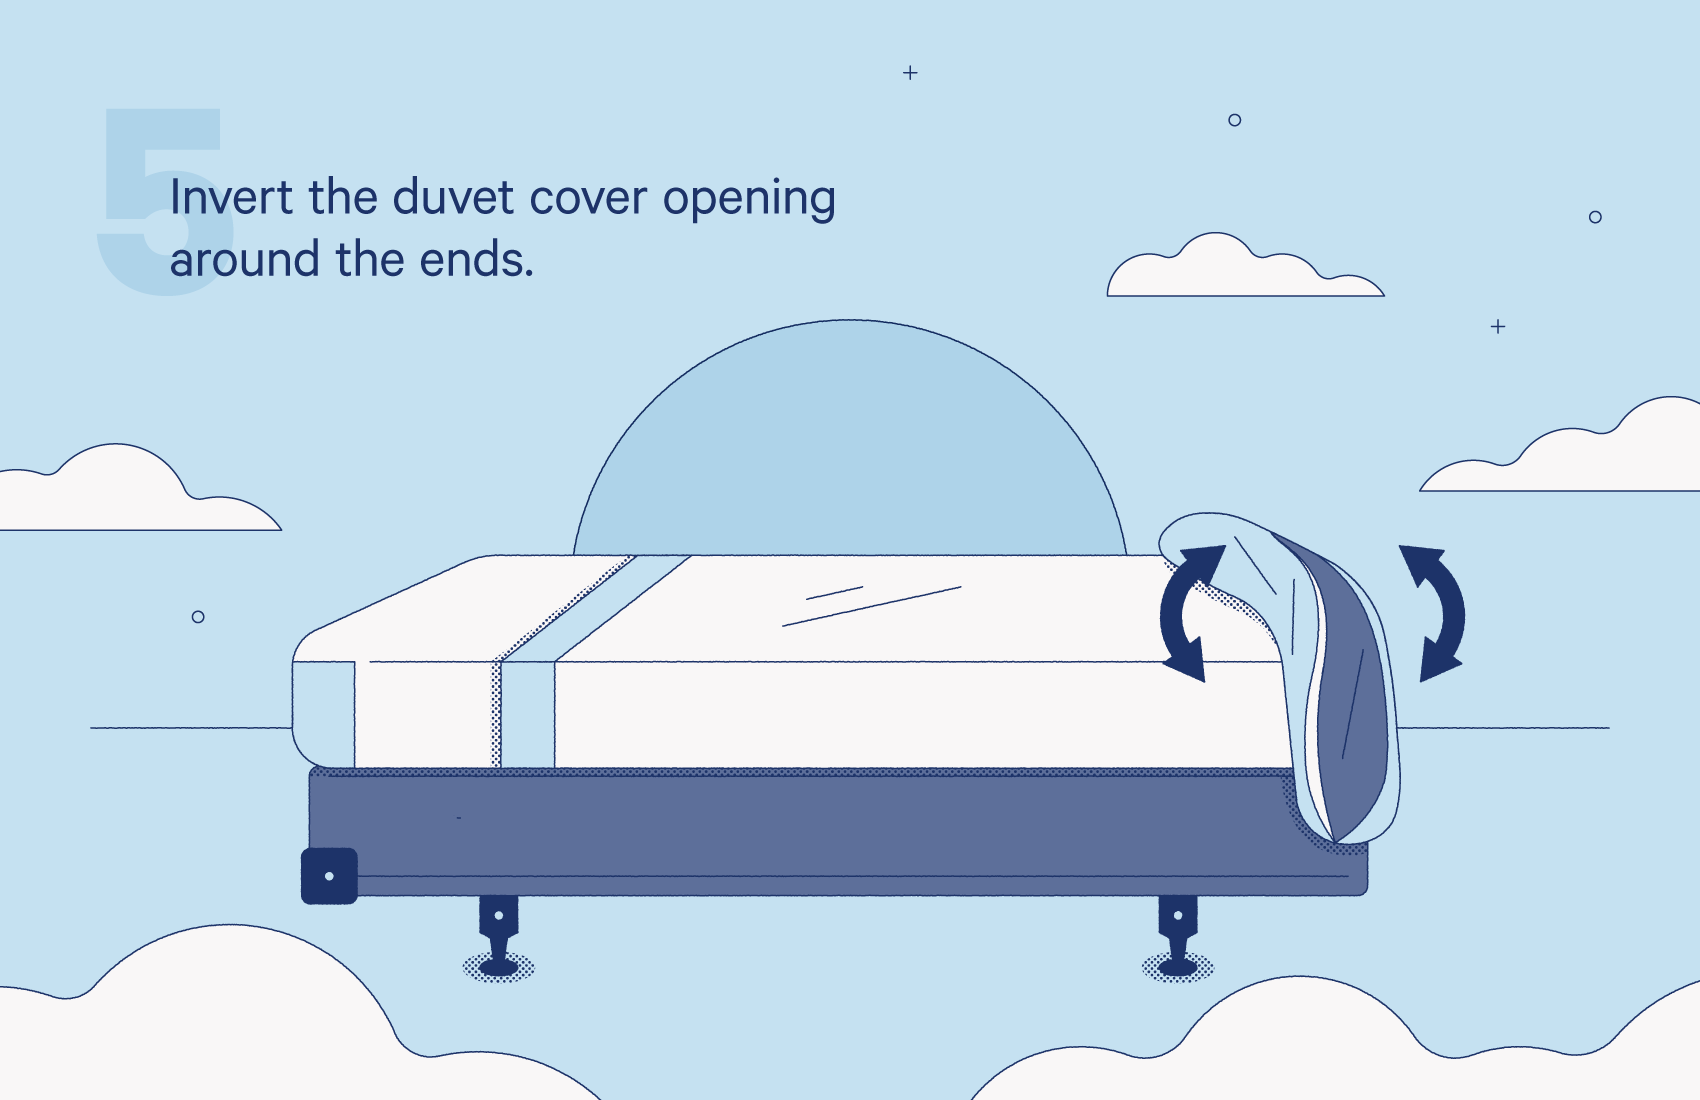 insert the duvet cover opening around the ends.